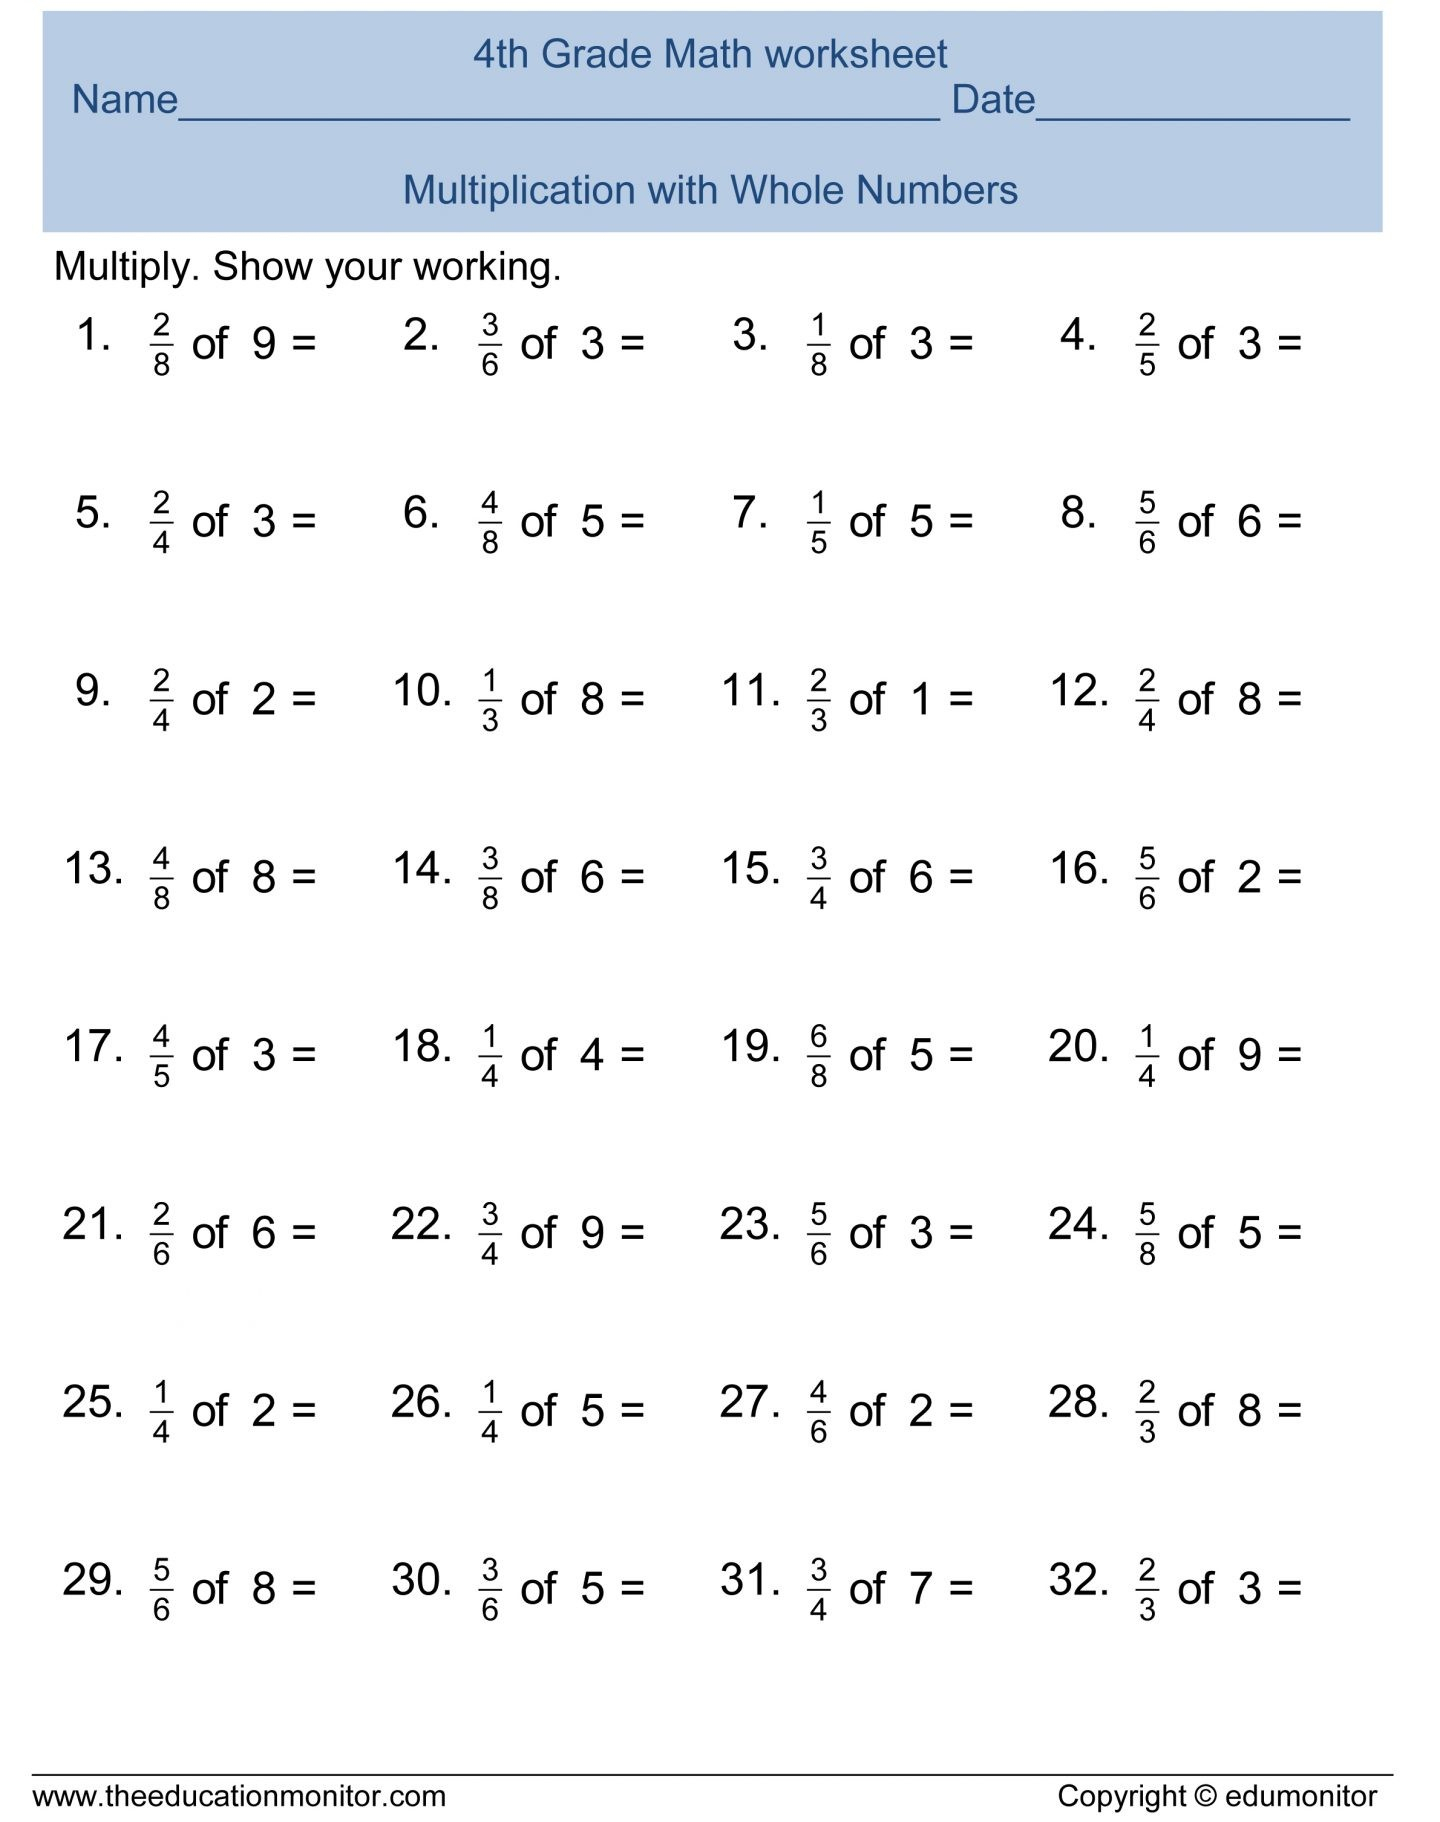 7Th Grade Math Worksheets Free Printable With Answers Stunning - 7Th | 7Th Grade Math Worksheets Printable With Answers